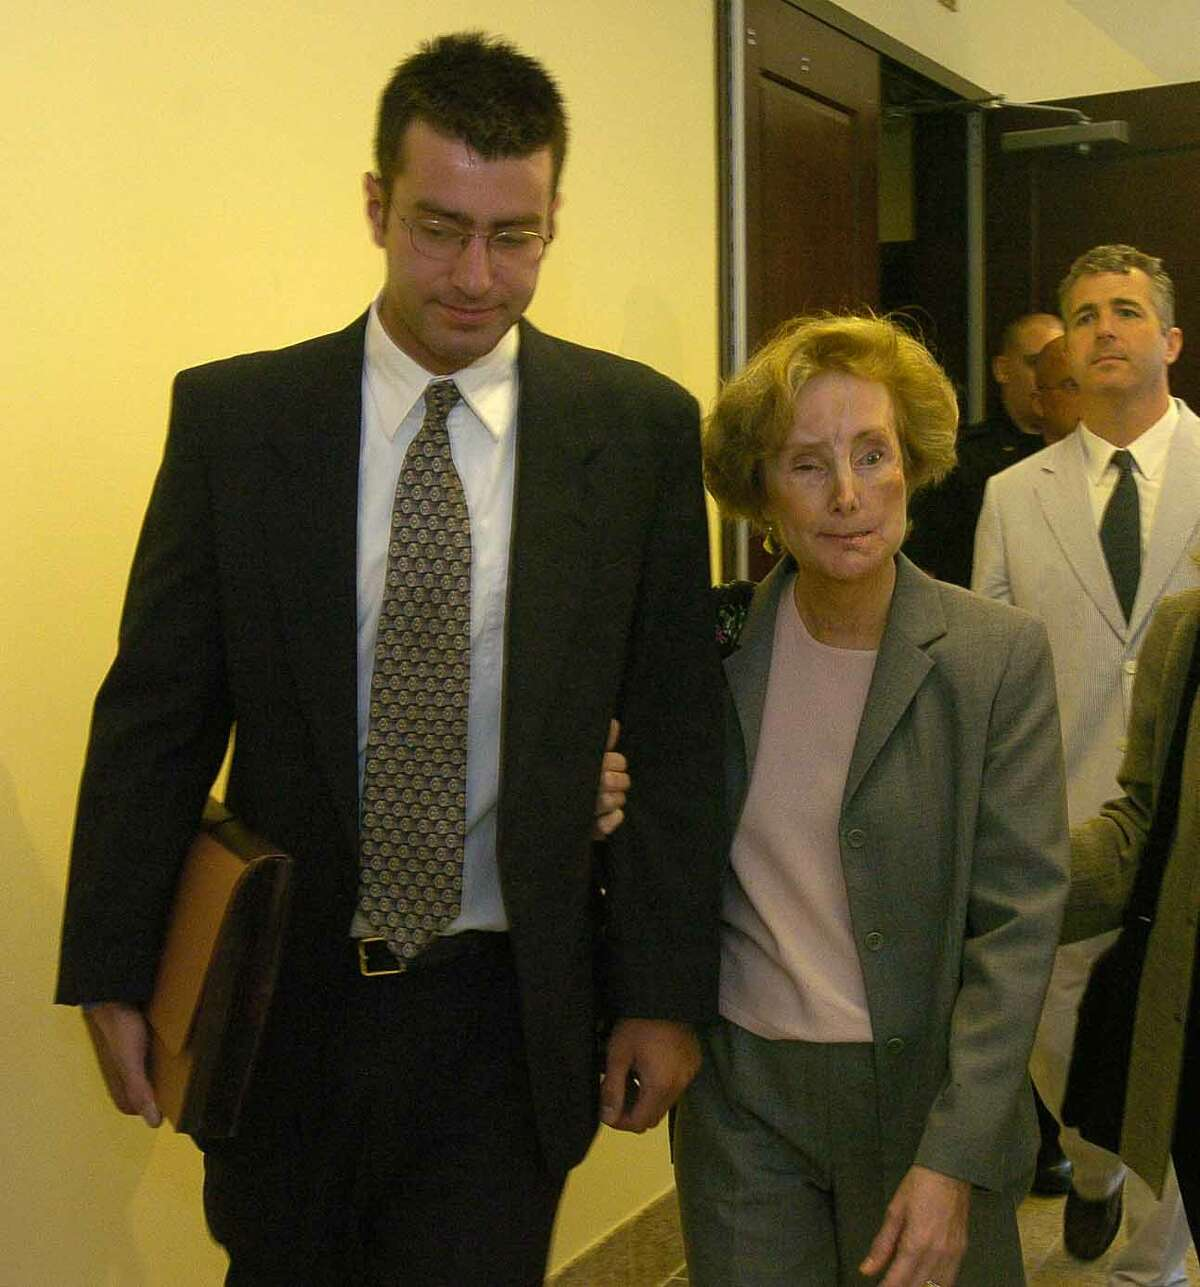 Times Union staff photo by Paul Buckowski --- Christopher Porco, left, and his mother, Joan Porco, right, leave Albany County court in Albany, N.Y. on Tuesday, May 16, 2006 during a break in pretrial hearings. Christopher is charged in the death of his father, Peter Porco and the attack of his mother back November of 2004.